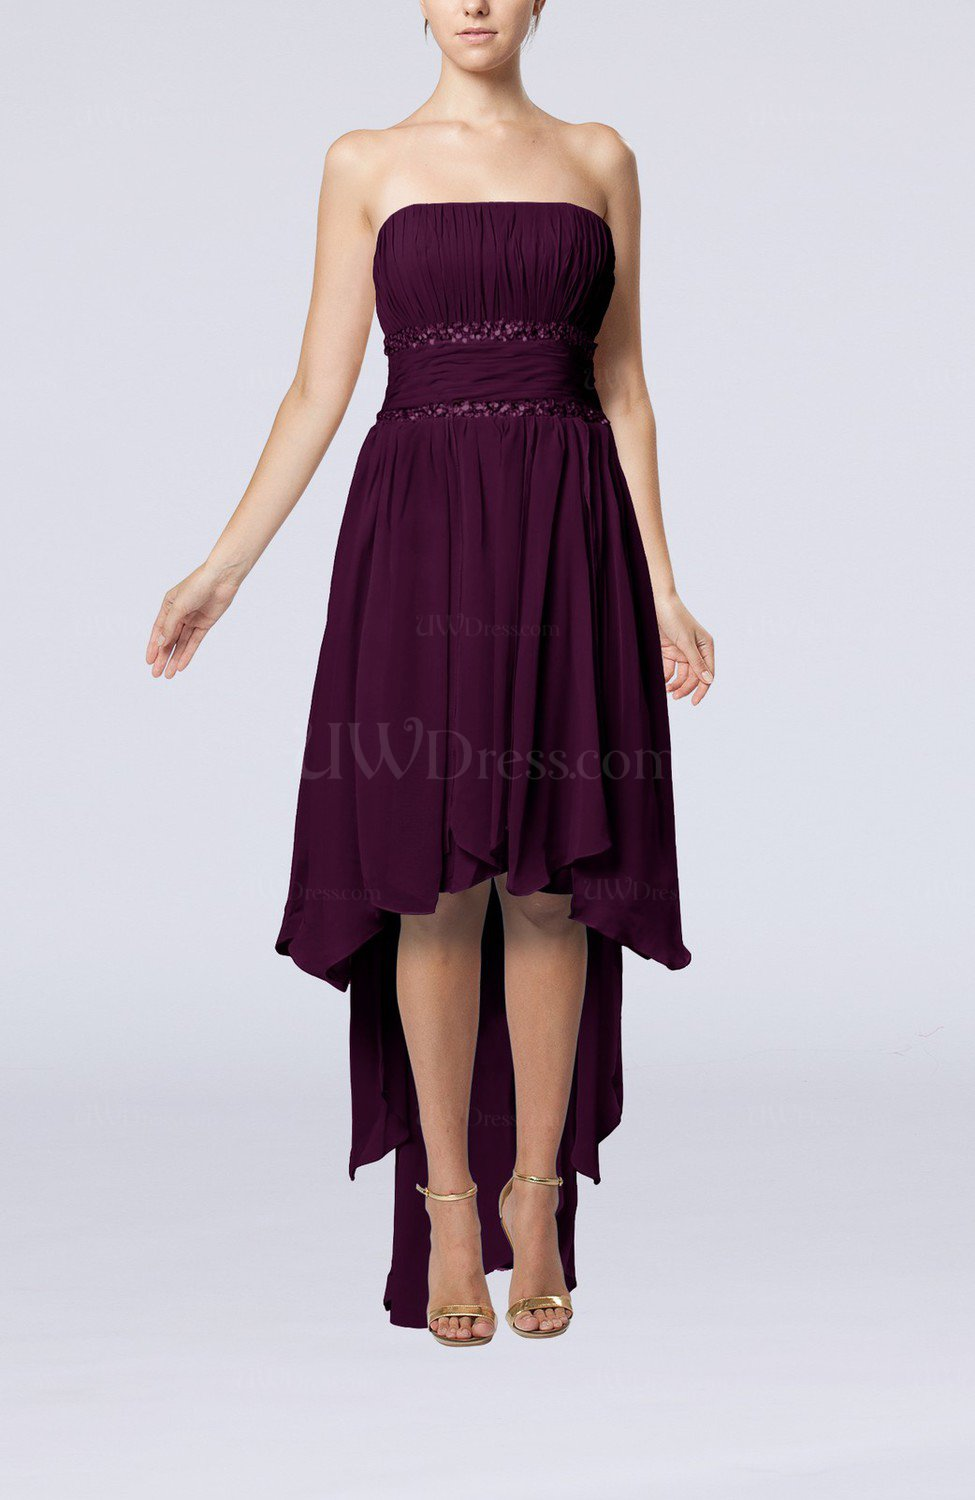 51d3071bebf Plum Plain A-line Strapless Sleeveless Zipper Chiffon Party Dresses (Style  D99436)